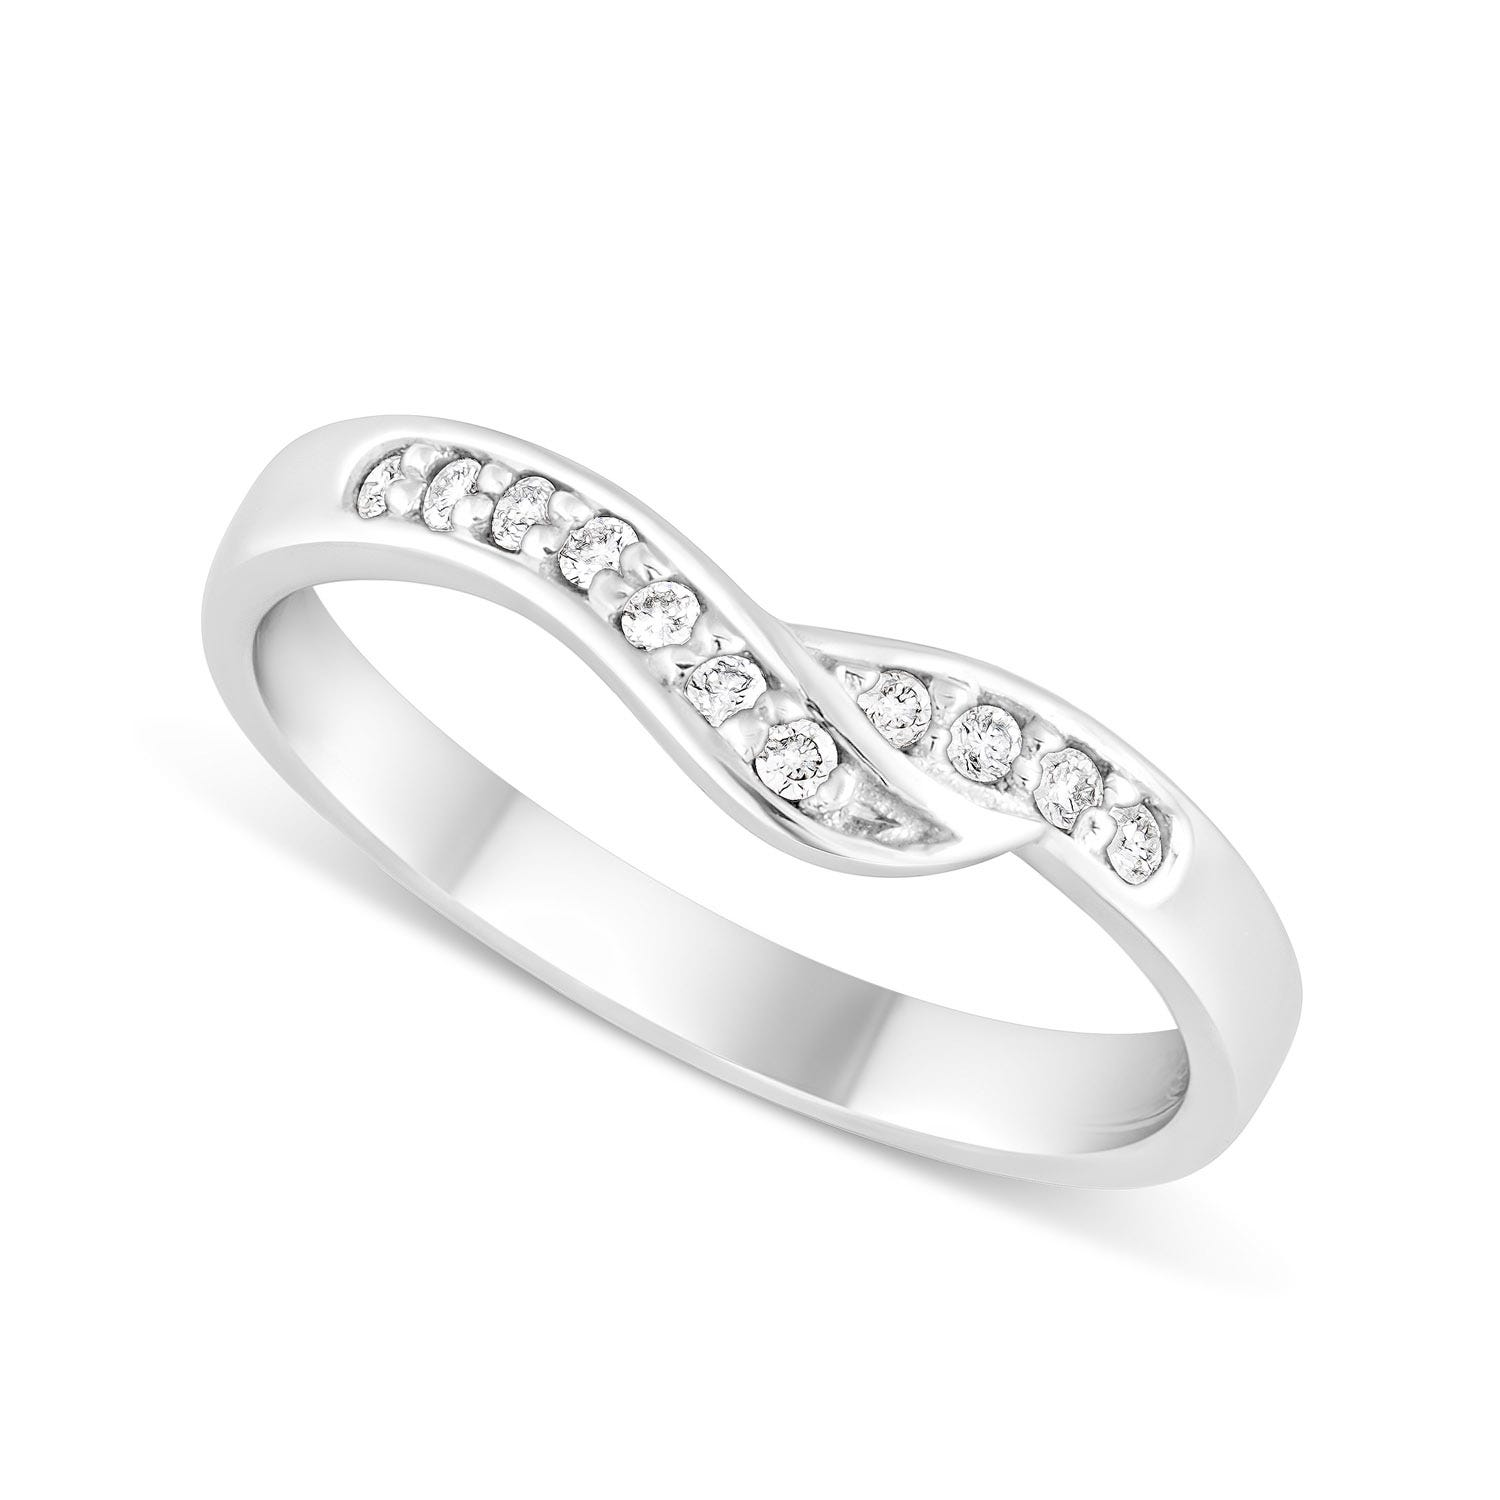 18ct White Gold Wave Shaped Diamond Wedding Ring